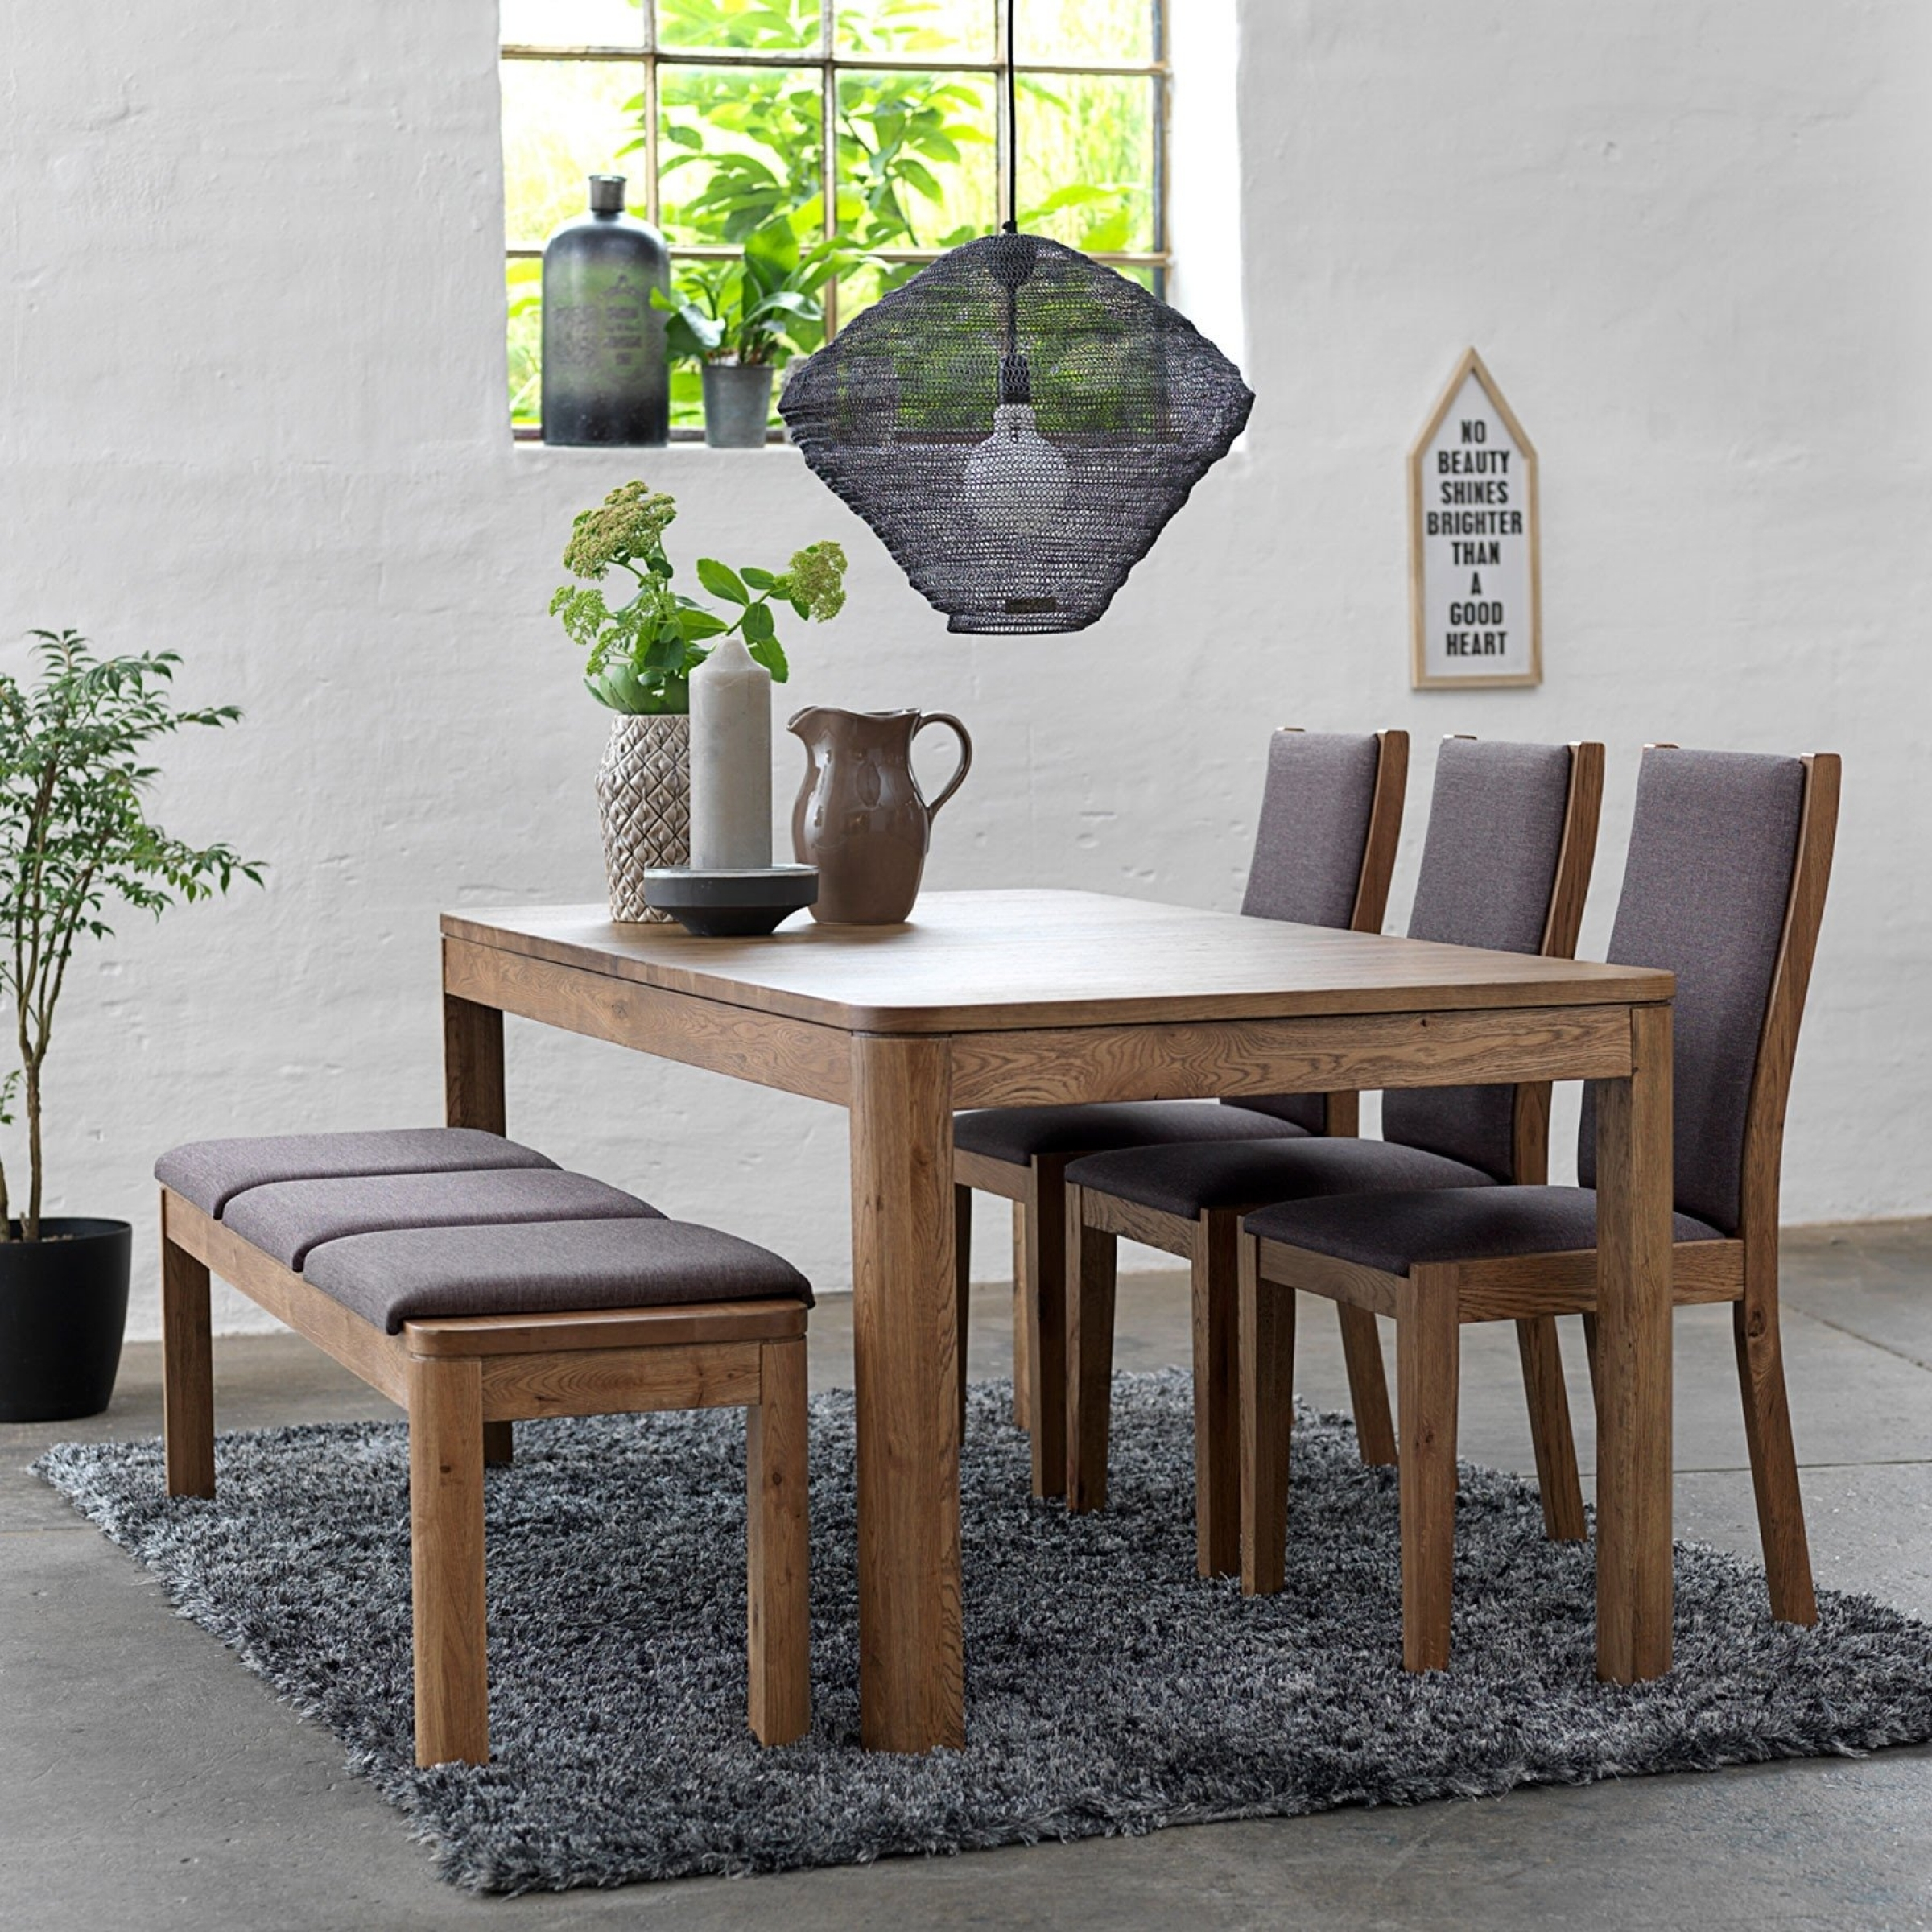 50 Dining Table With Bench You Ll Love